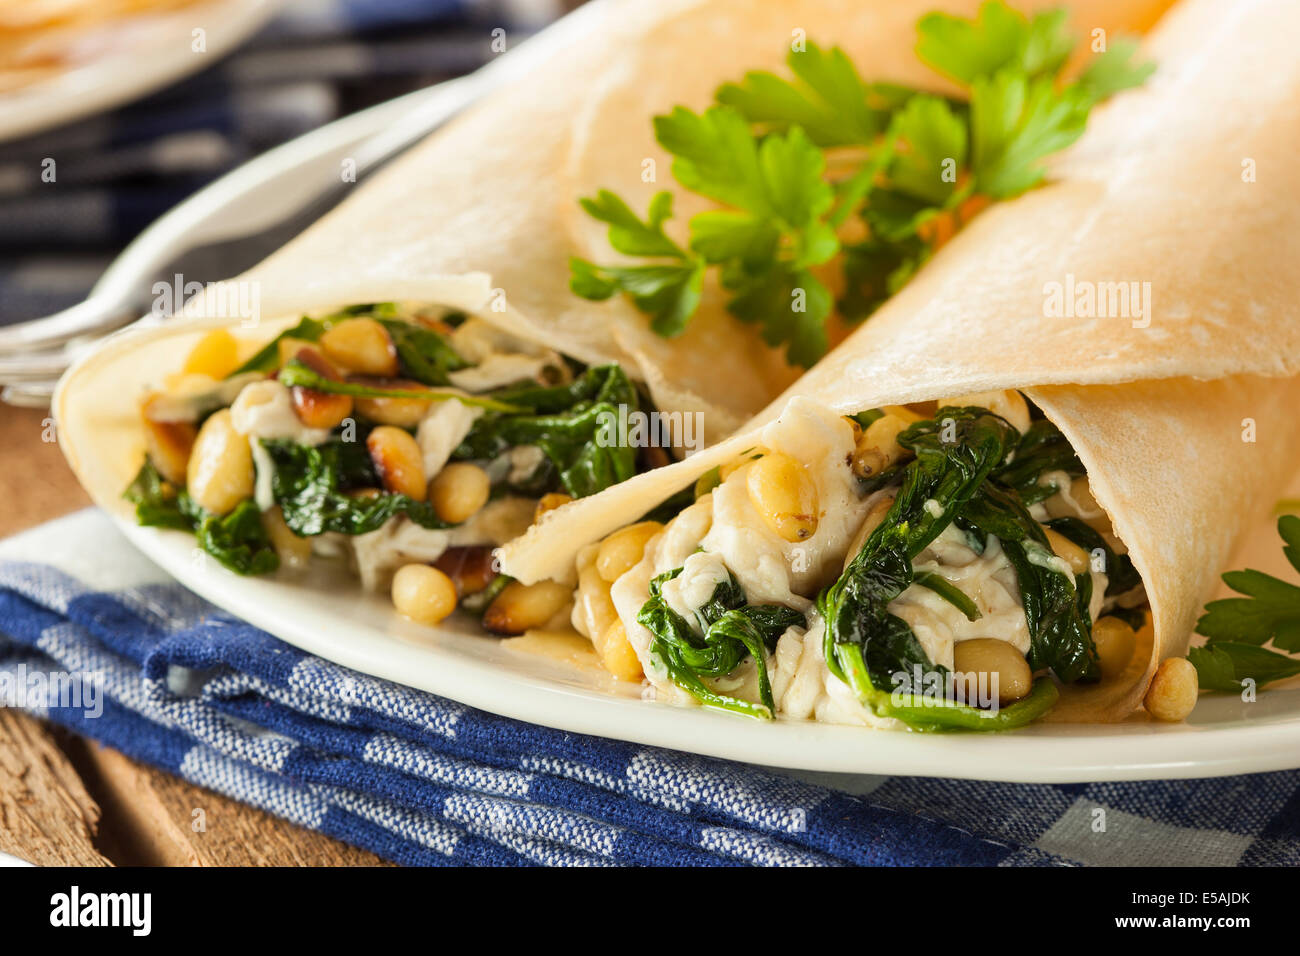 Delicious Homemade Savory French Crepes with Spinach and Feta - Stock Image